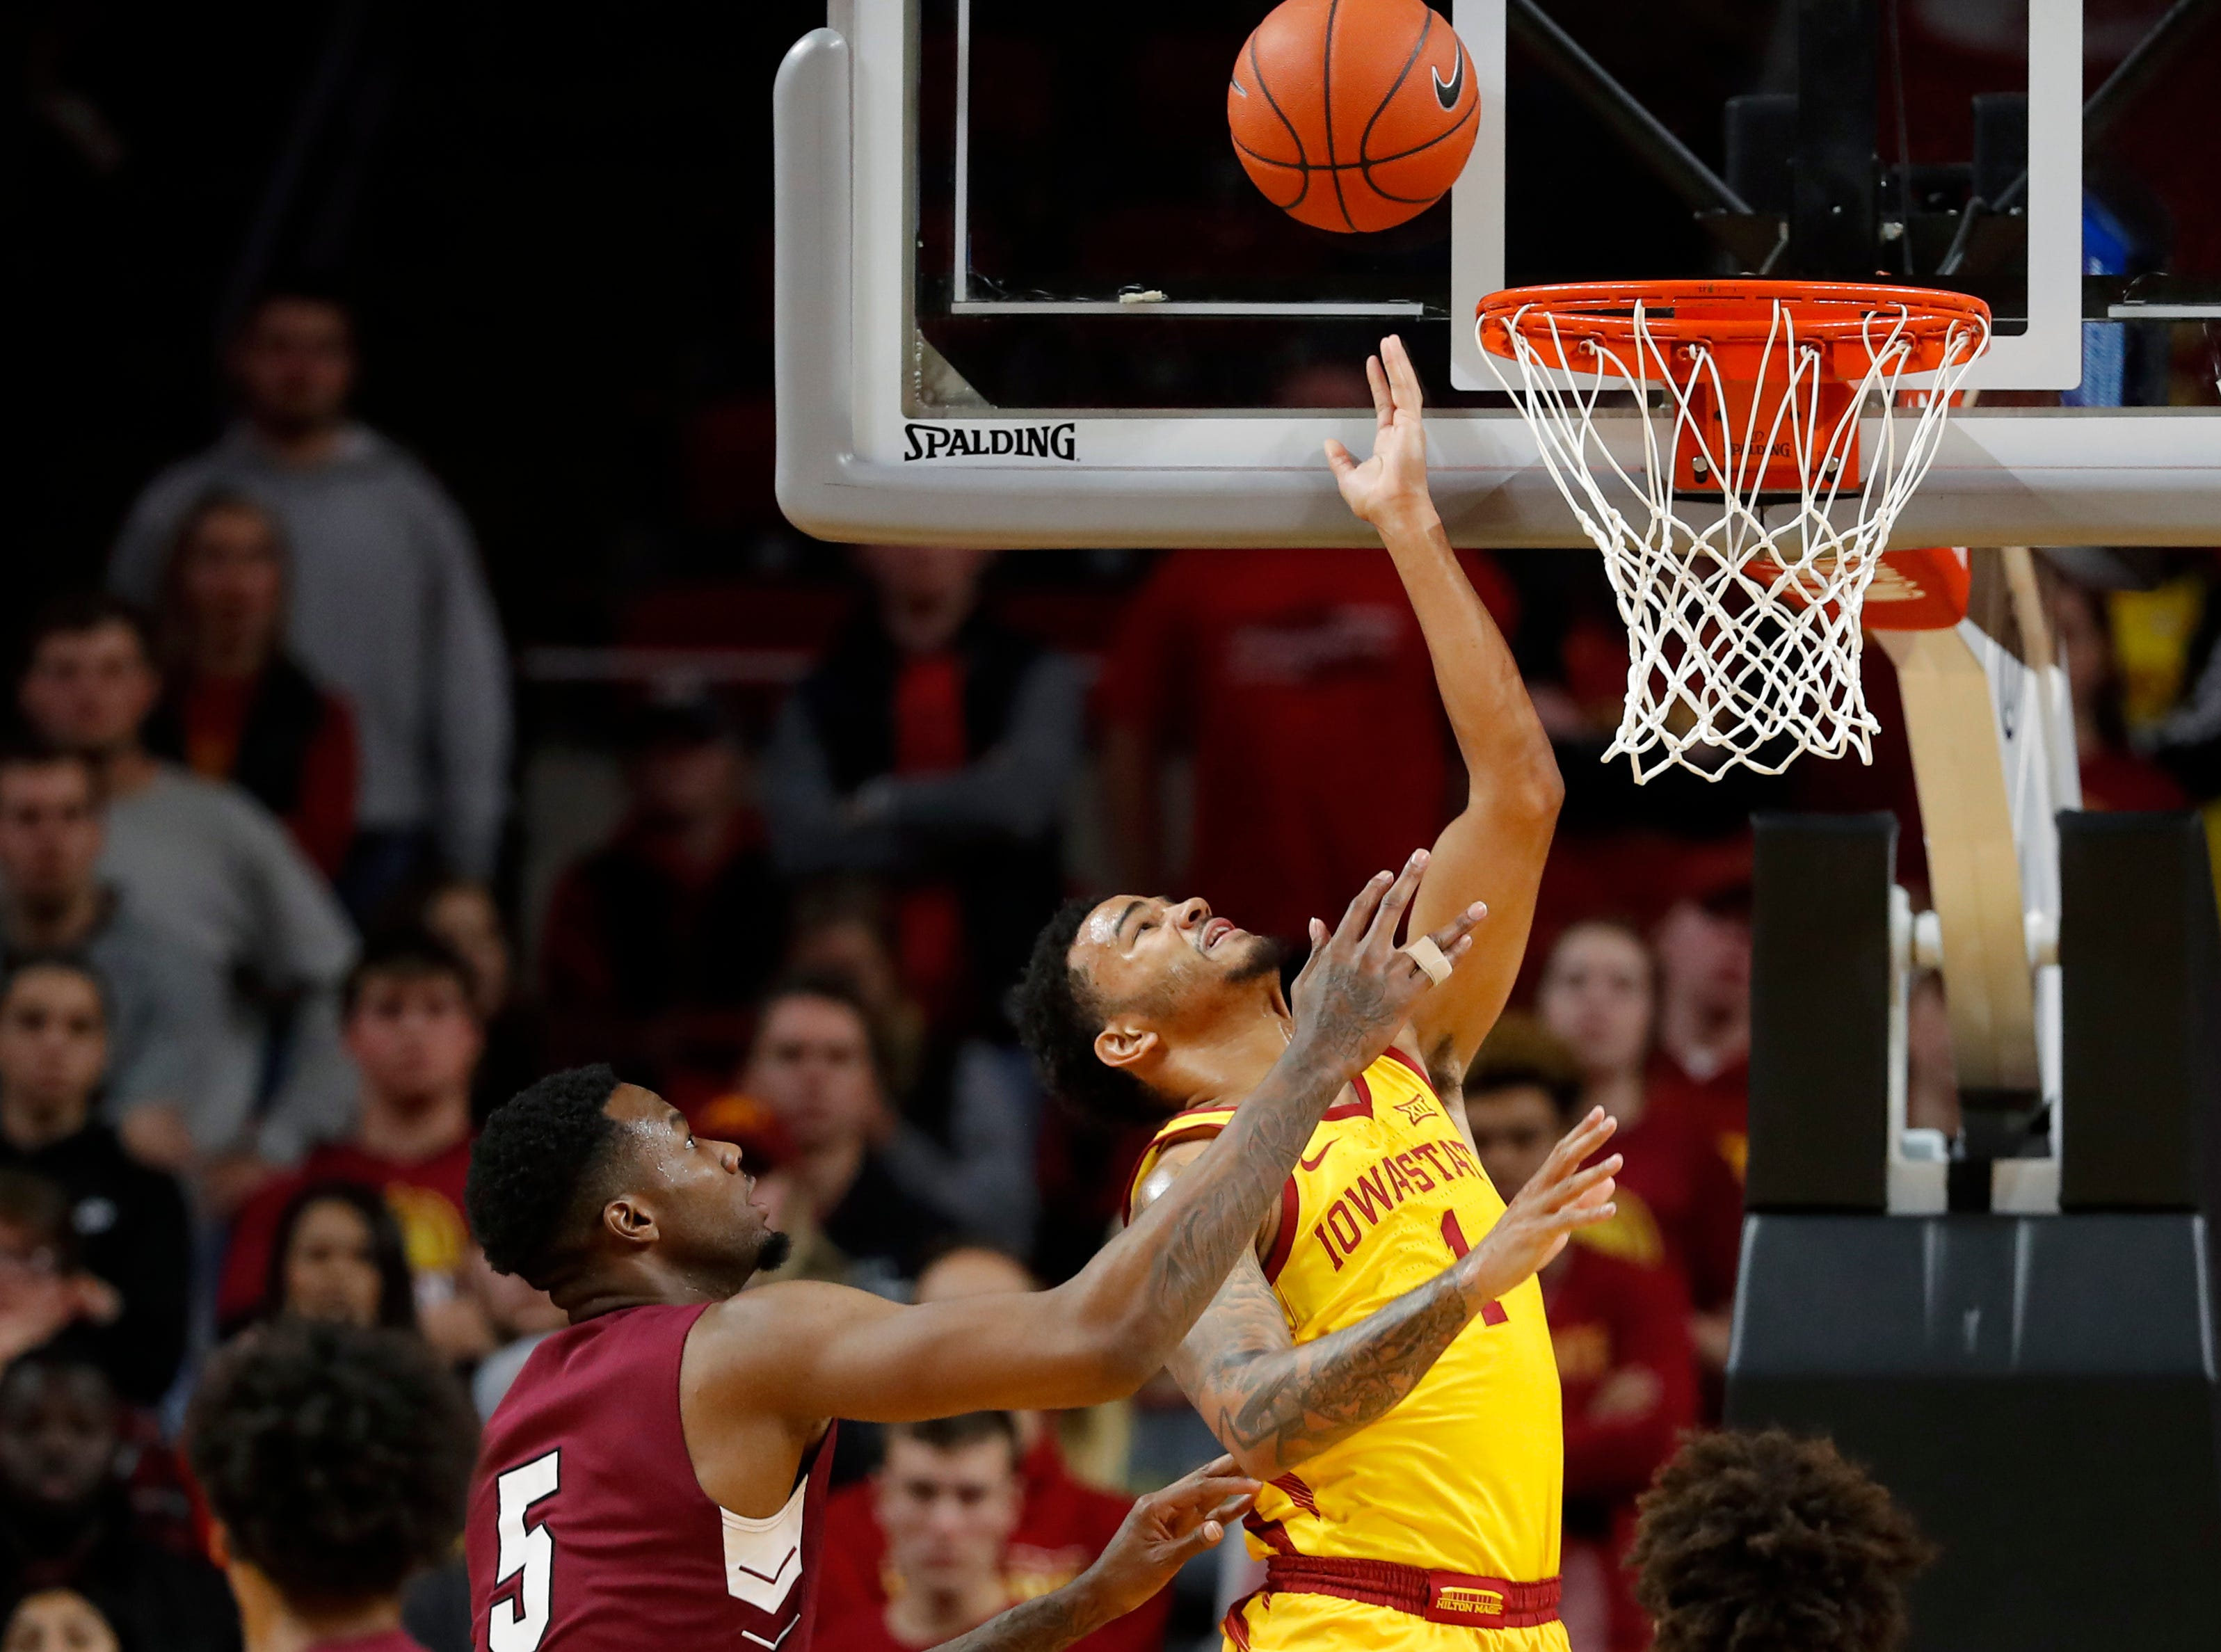 Iowa State guard Nick Weiler-Babb (1) is fouled by Texas Southern center Trayvon Reed (5) during the second half of an NCAA college basketball game, Monday, Nov. 12, 2018, in Ames, Iowa.